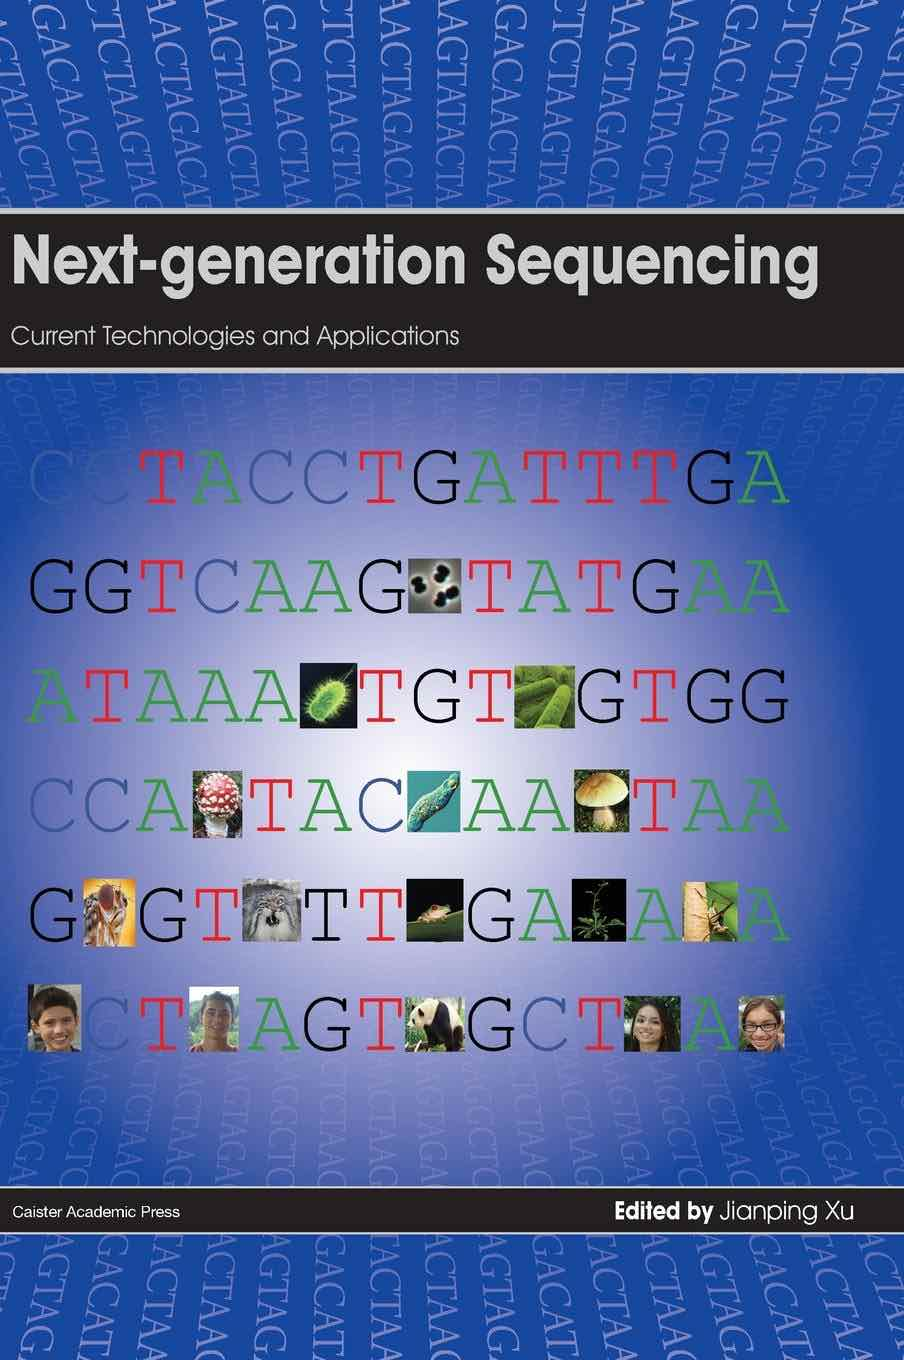 Next-generation Sequencing: Current Technologies and Applications